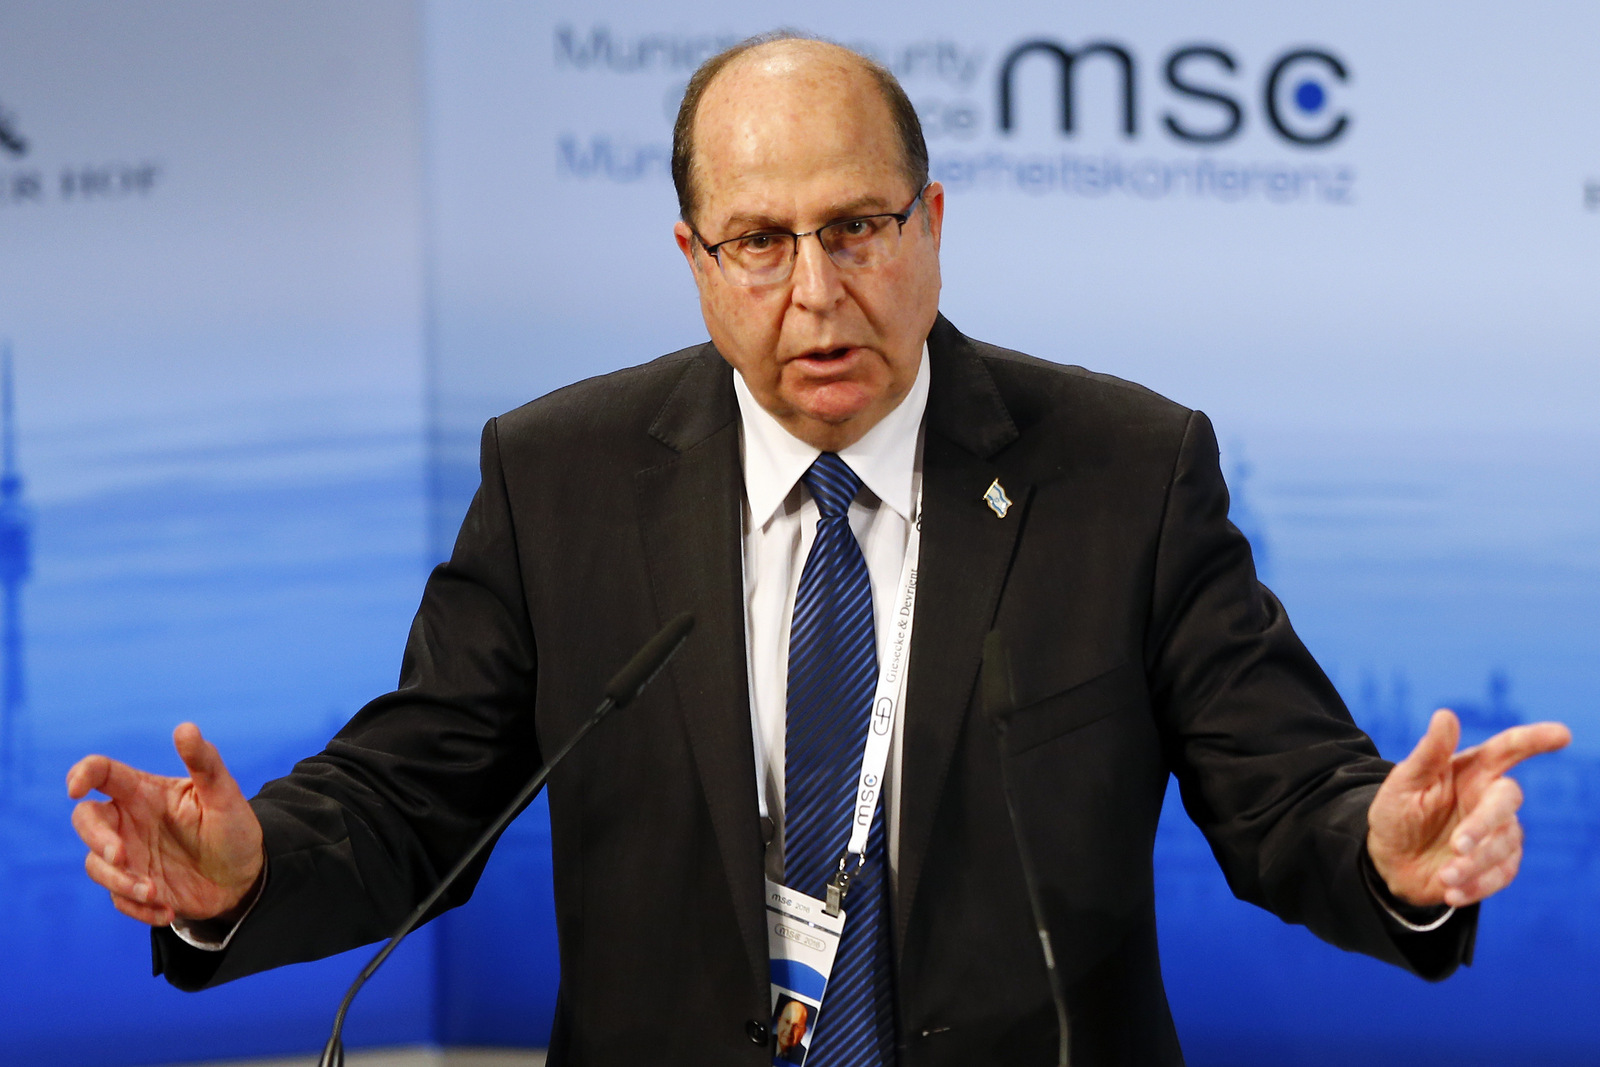 Moshe Yaalon, Defence Minister of Israel, gestures during his speech at the Security Conference in Munich, Germany, Sunday, Feb. 14, 2016. (AP Photo/Matthias Schrader)